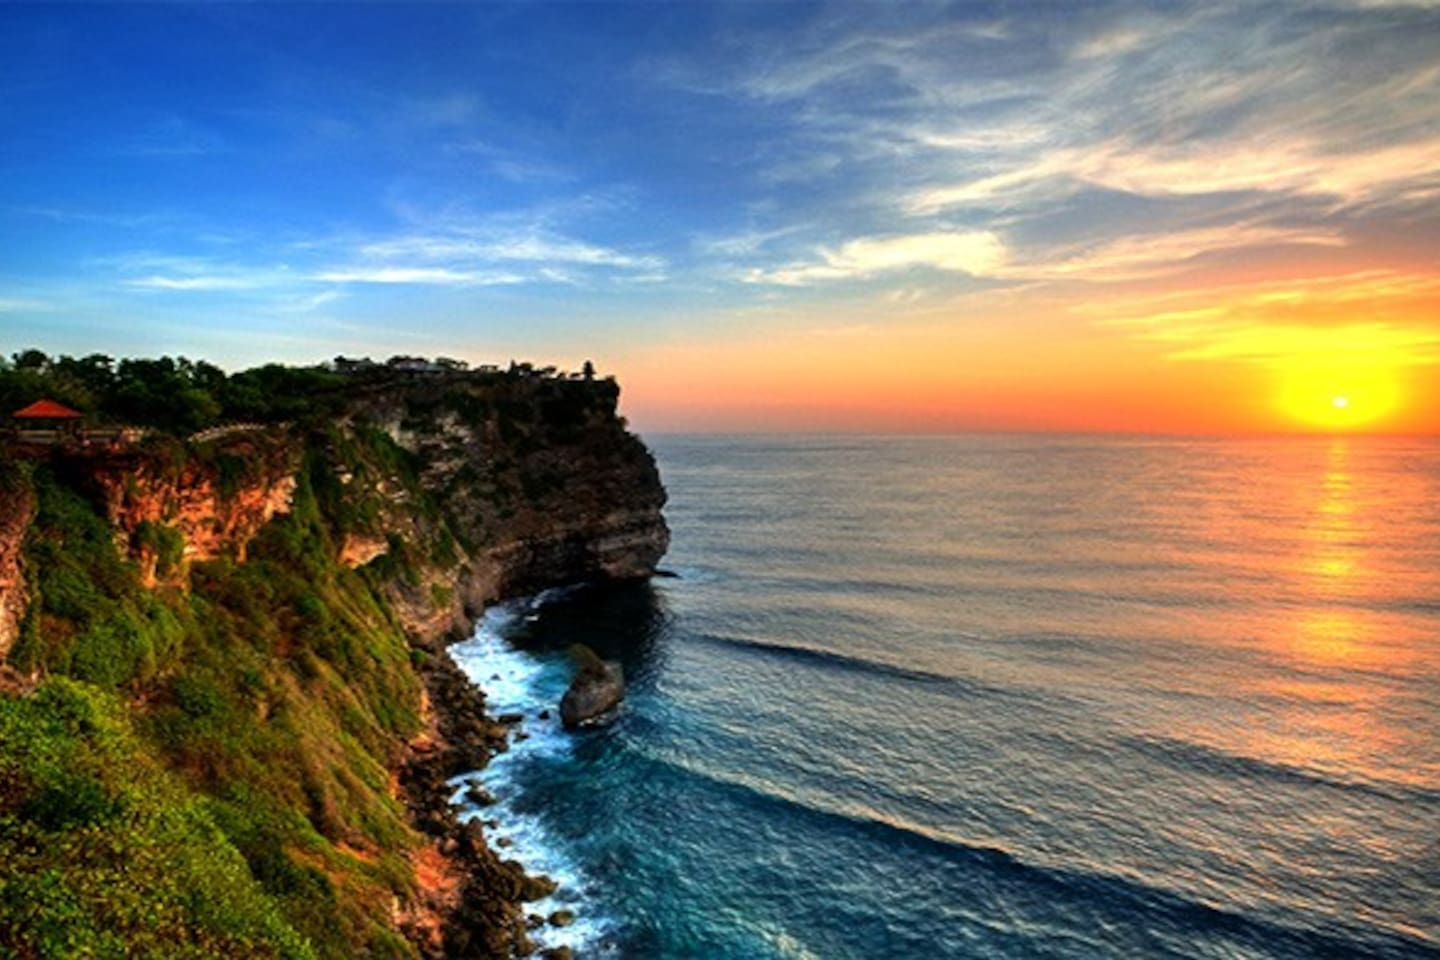 Uluwatu Temple is one of Sad Khayangan (the biggest temple in Bali) owns magnificent view of the Indian Ocean and sunset as a backdrop.